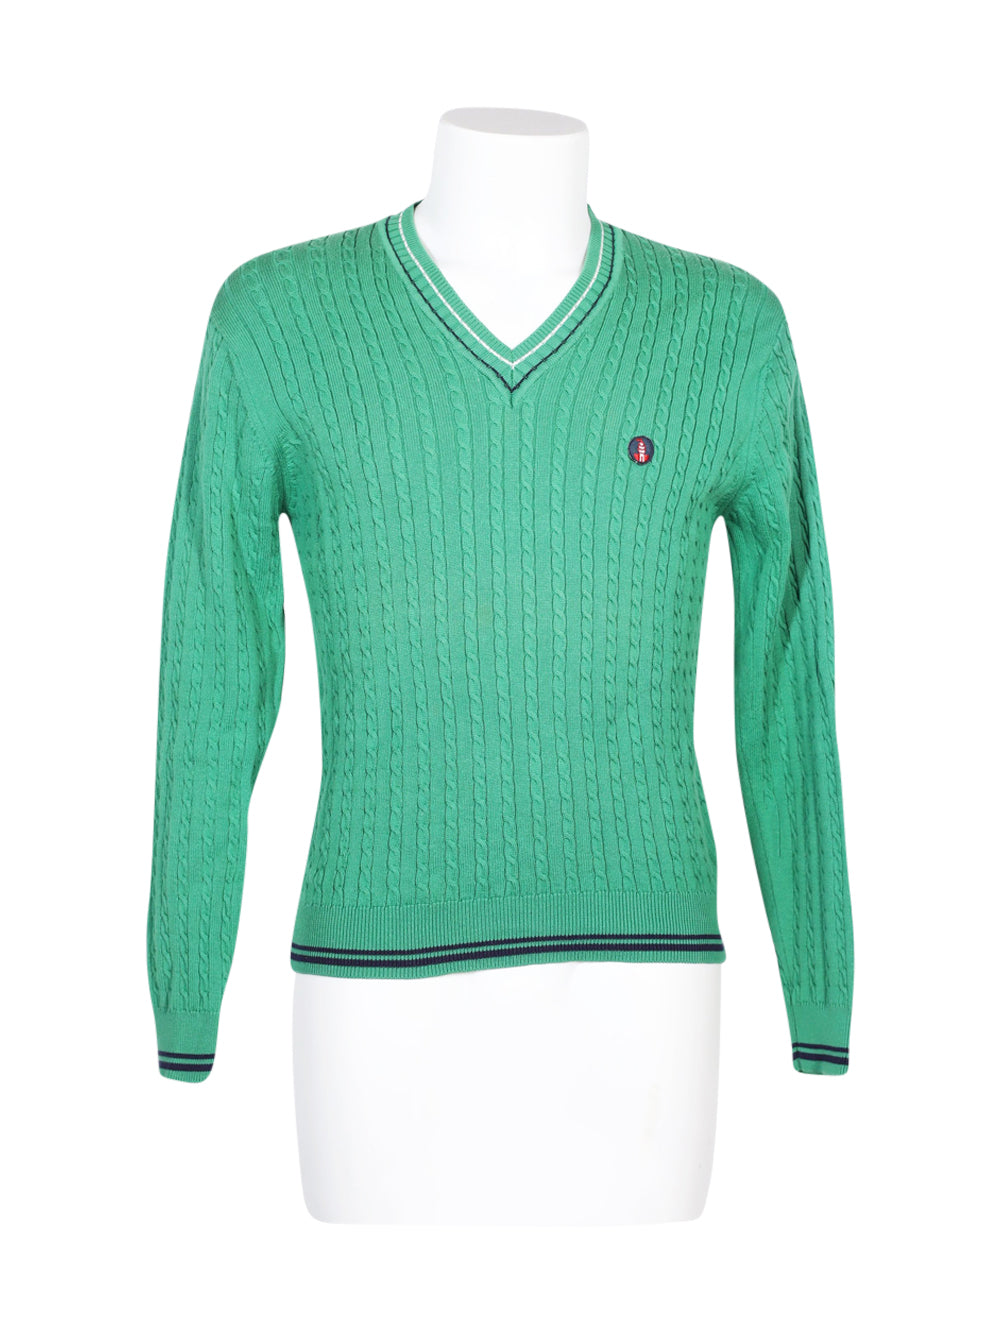 Front photo of Preloved BRAMANTE Green Man's sweater - size 38/M